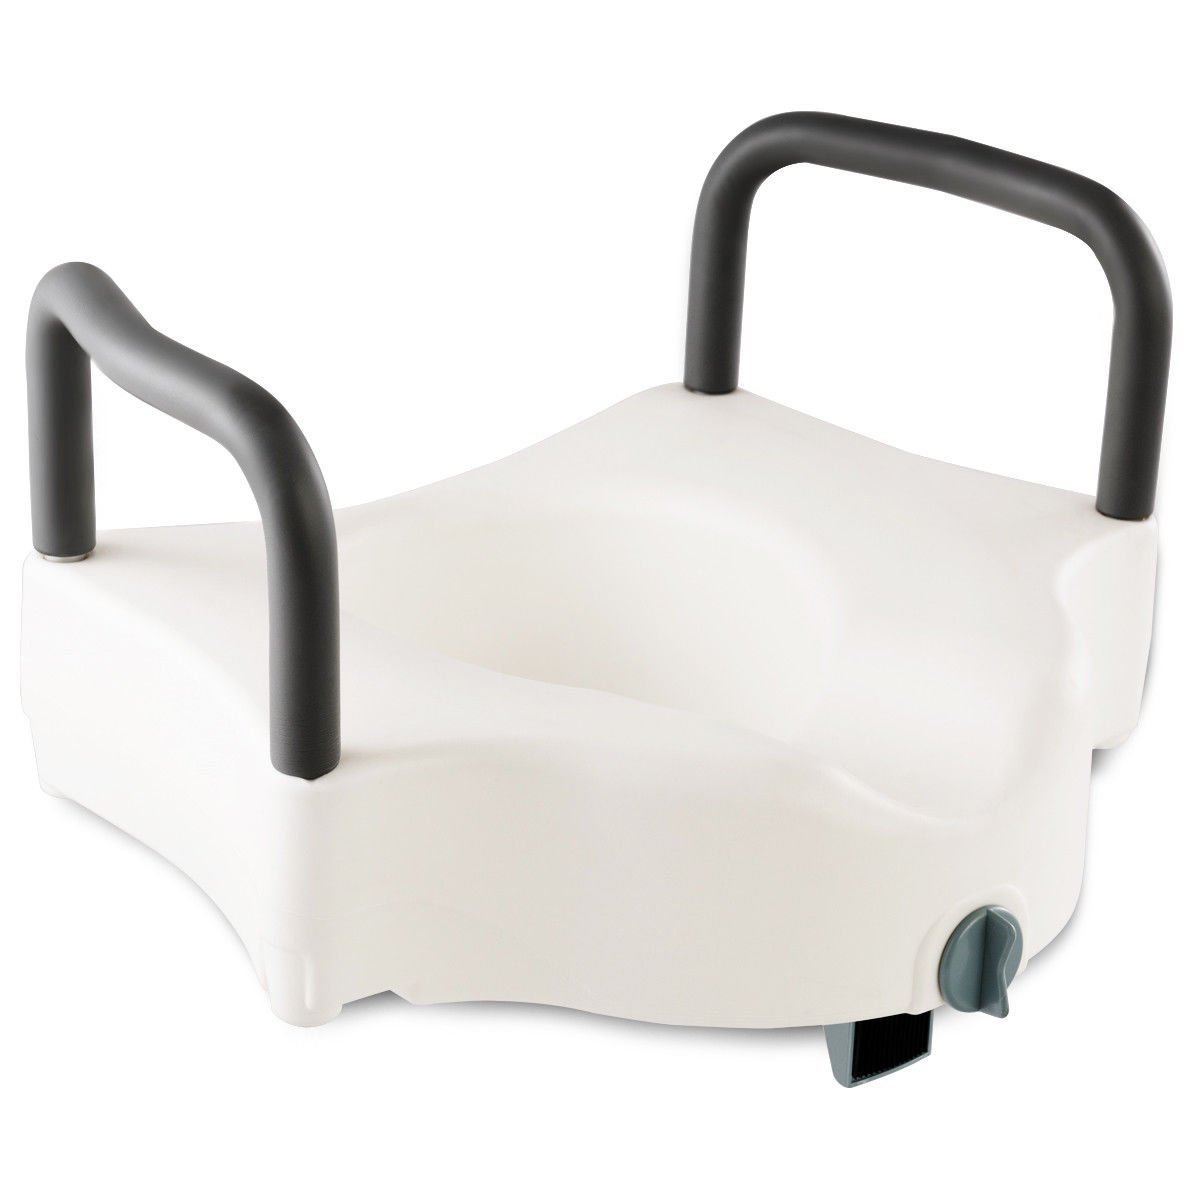 GHP 220-Lbs Capacity White PE & Aluminum Medical Toilet Seat with Removable Armrests